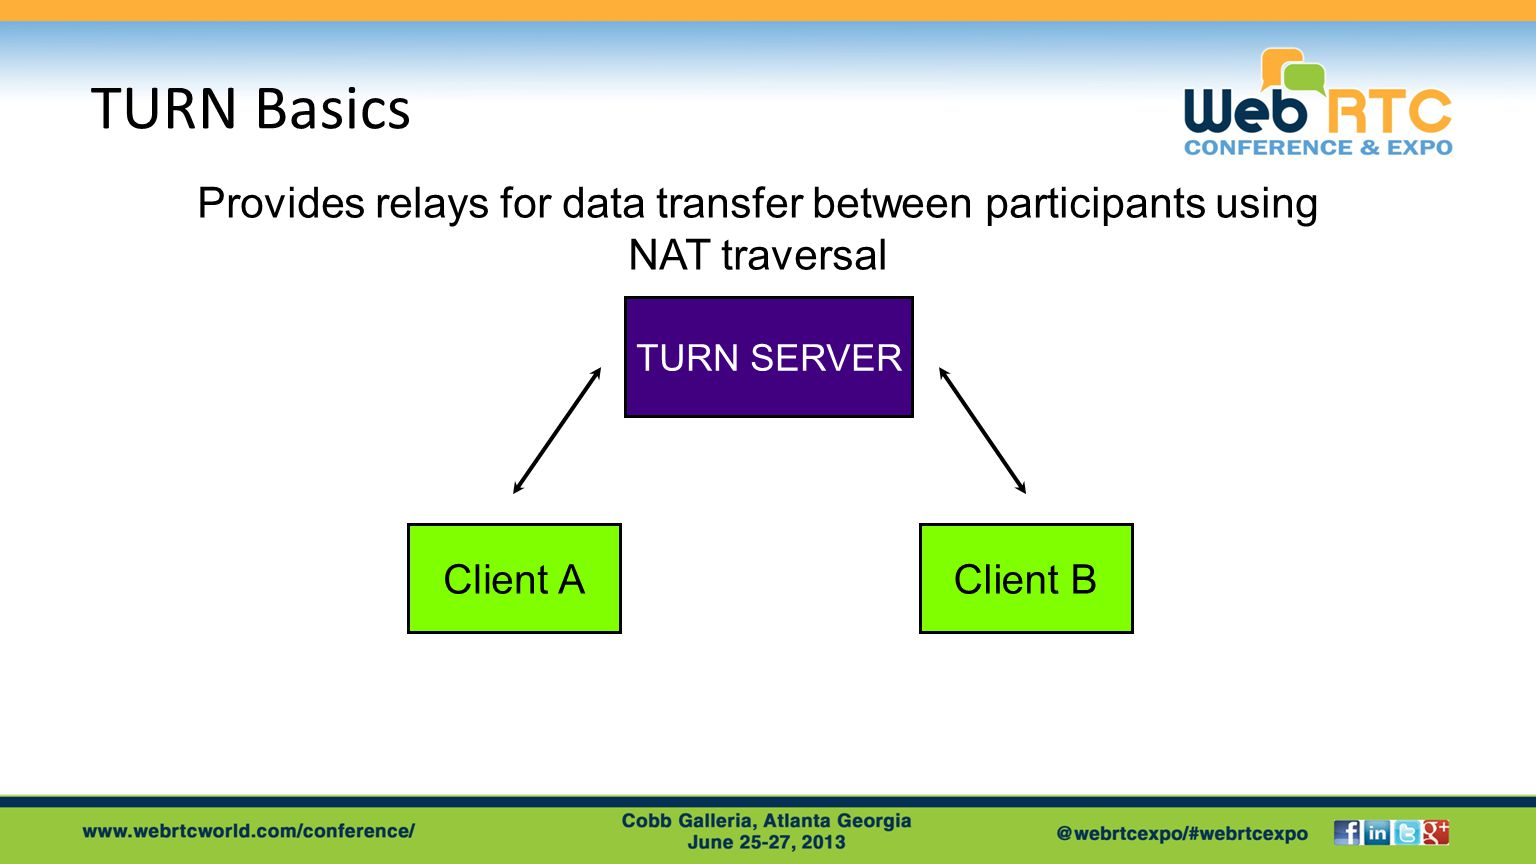 TURN Basics Provides relays for data transfer between participants using NAT traversal Client A TURN SERVER Client B